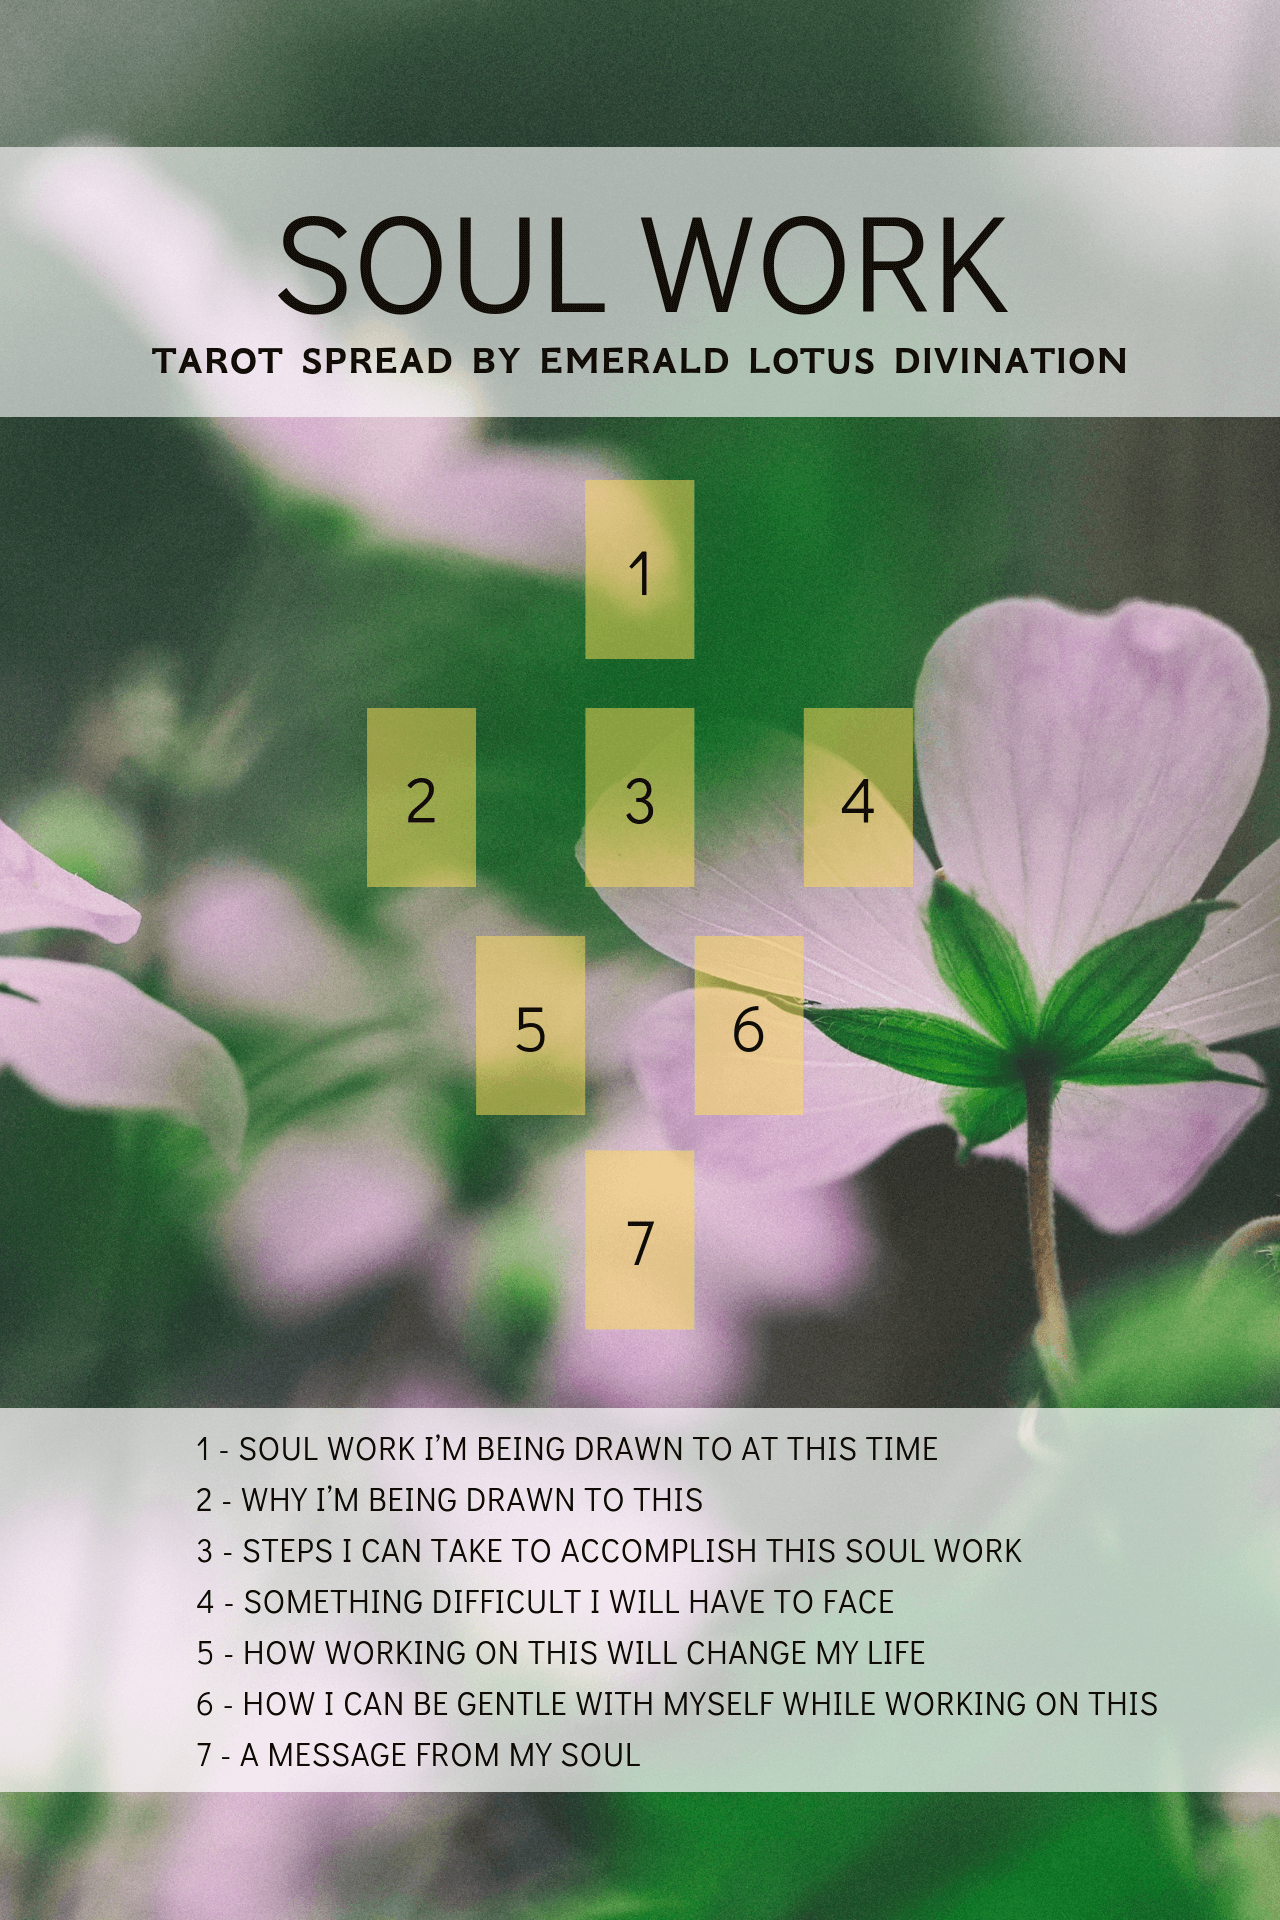 Soul-Work-Tarot-Spread-Emerald-Lotus-Divination-1.png